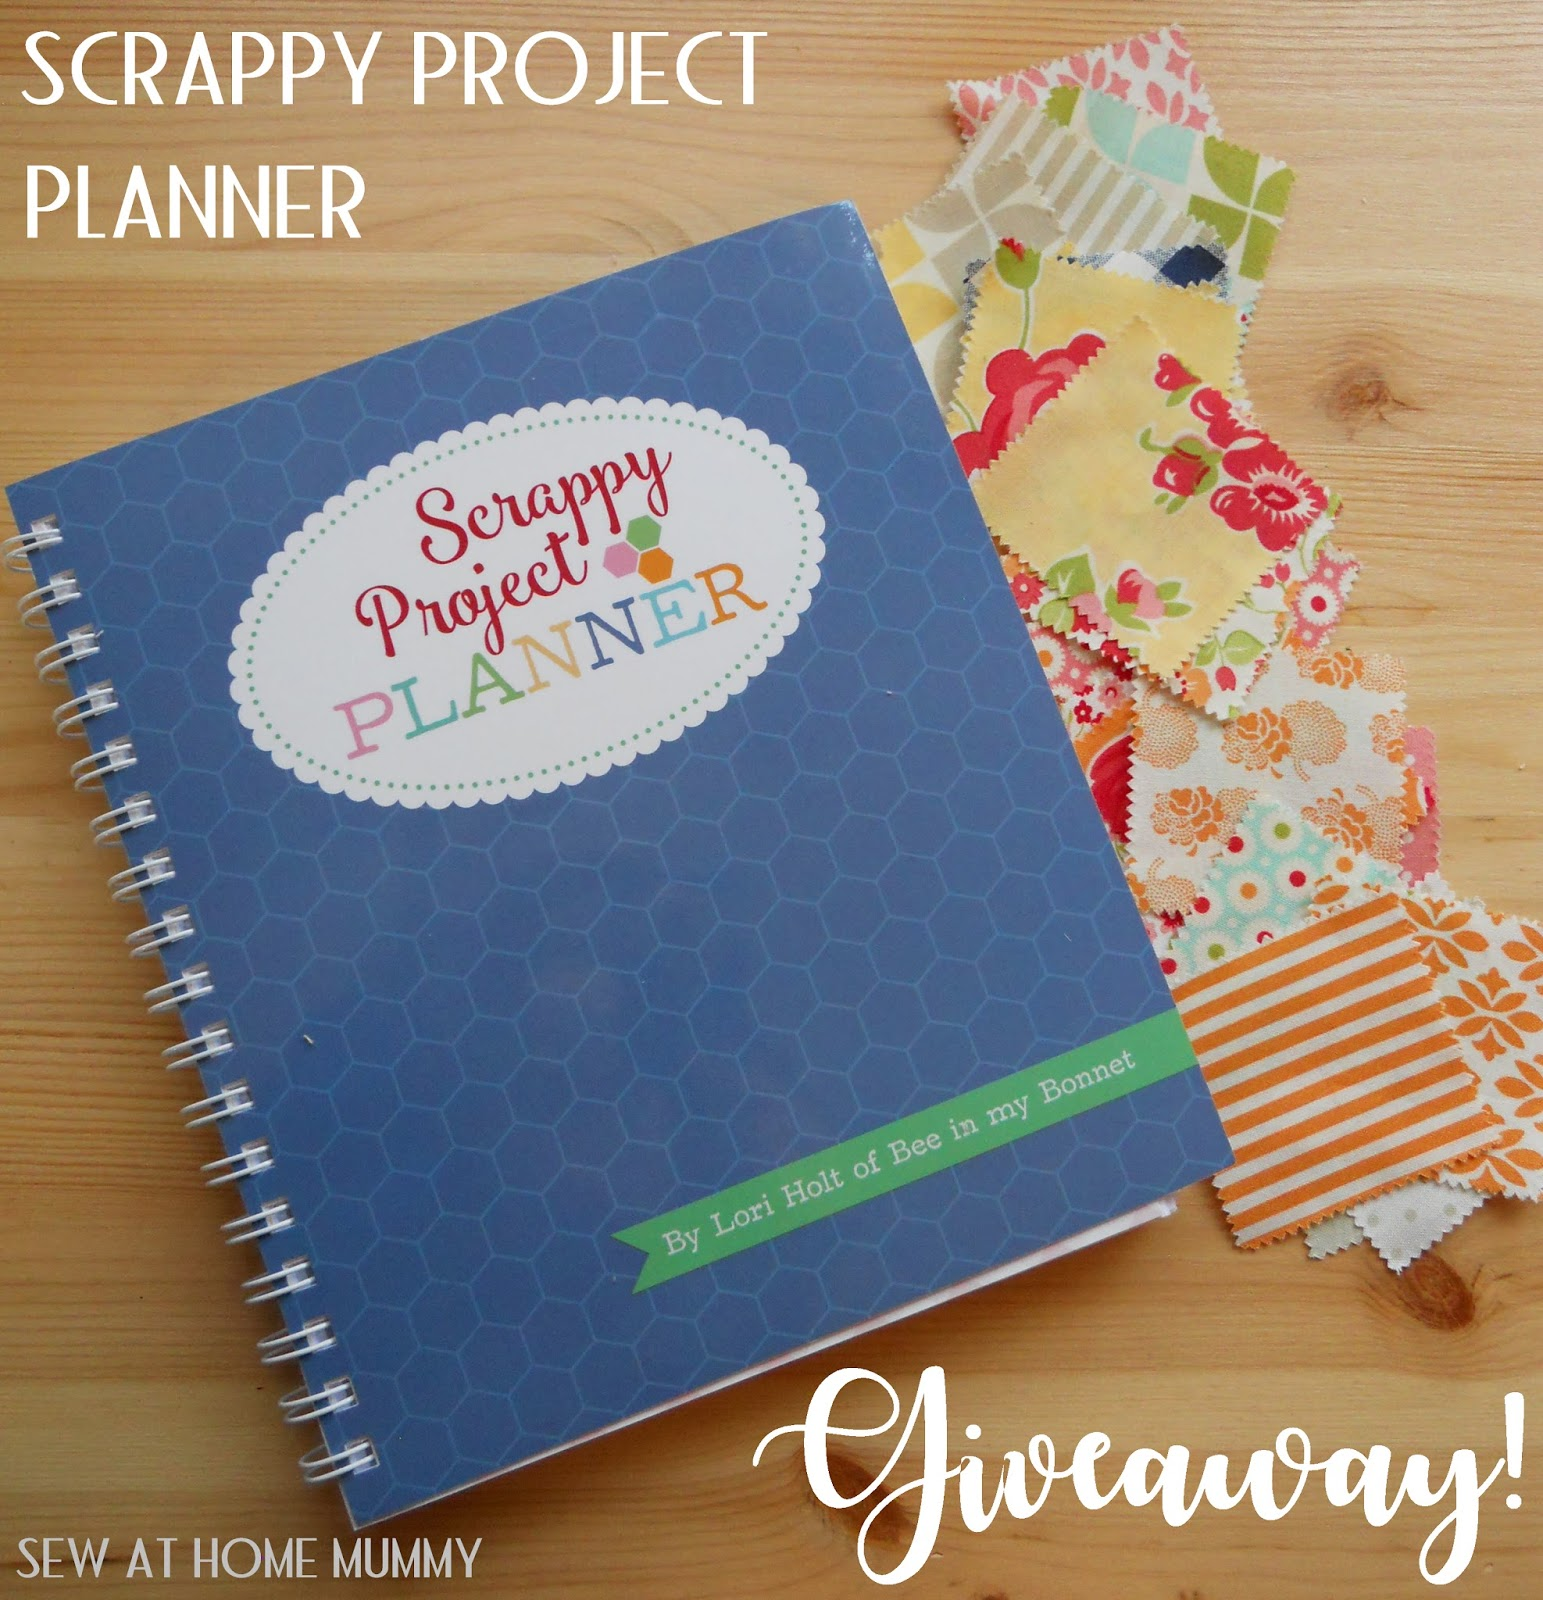 Sew at home mummy winner announced scrappy project for Home project planner